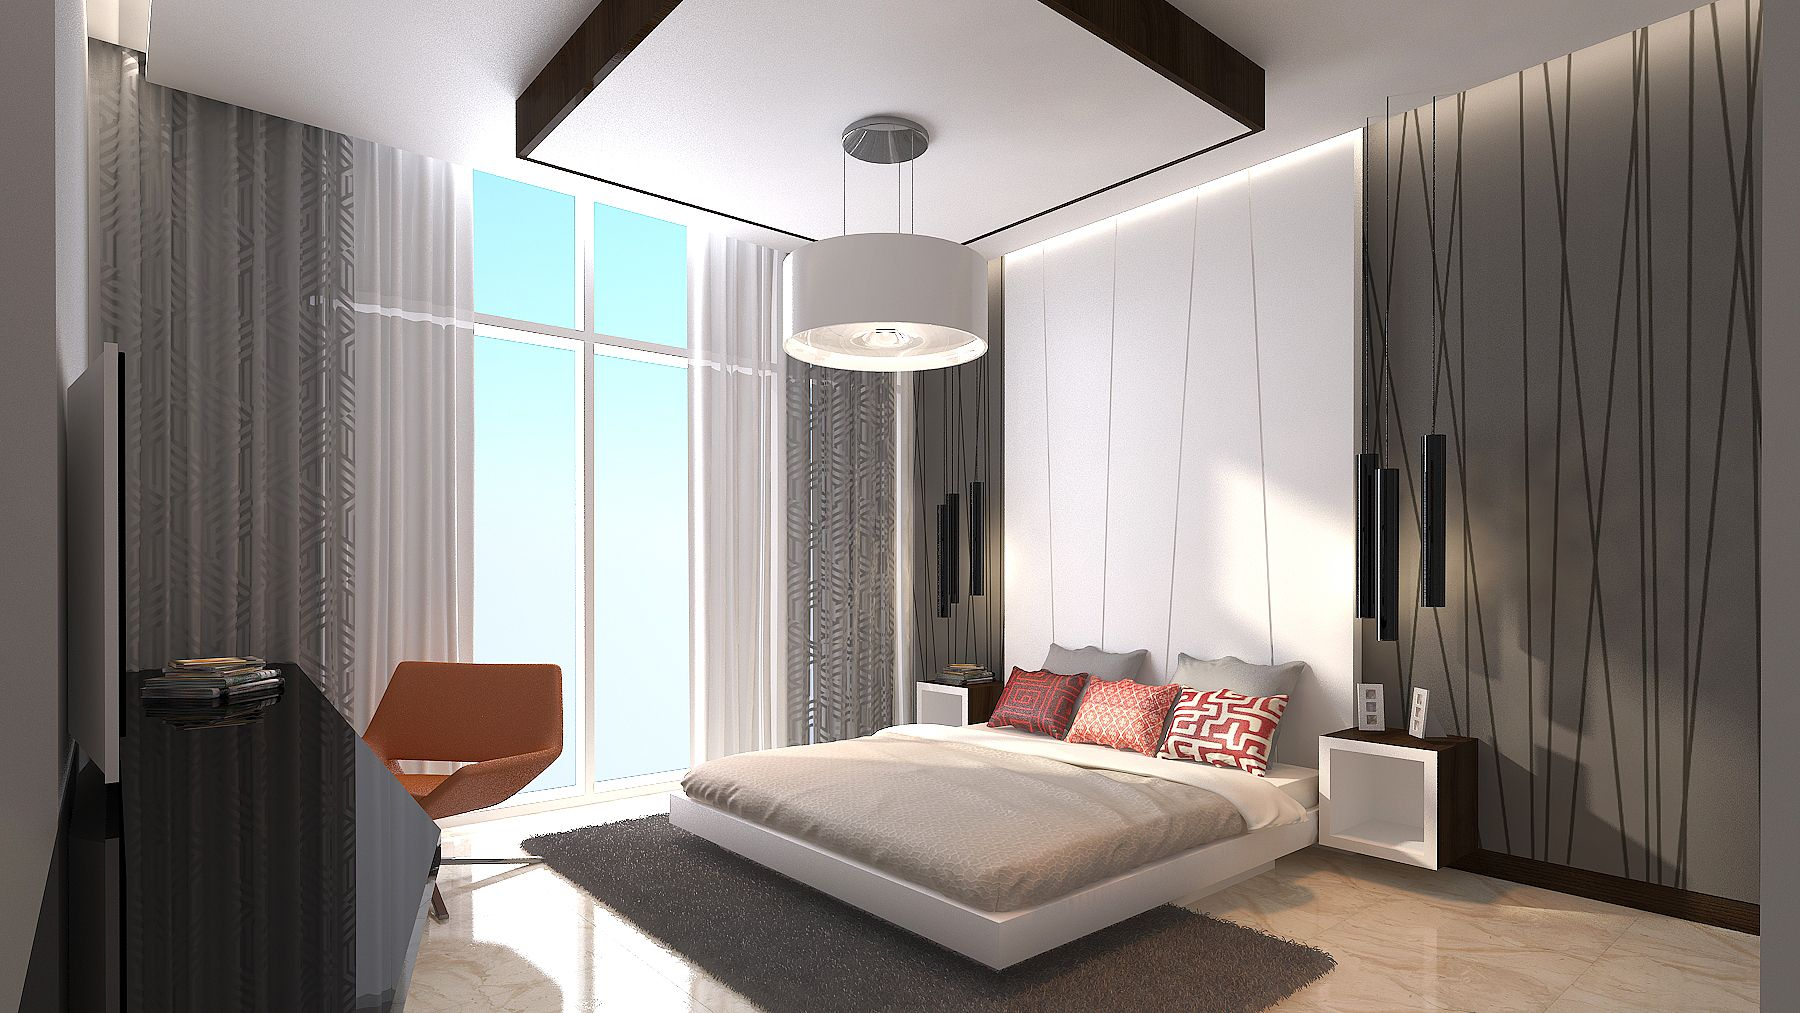 Master Bedroom 3d Design modern interior design, modern bedroom, master bedroom, geometric